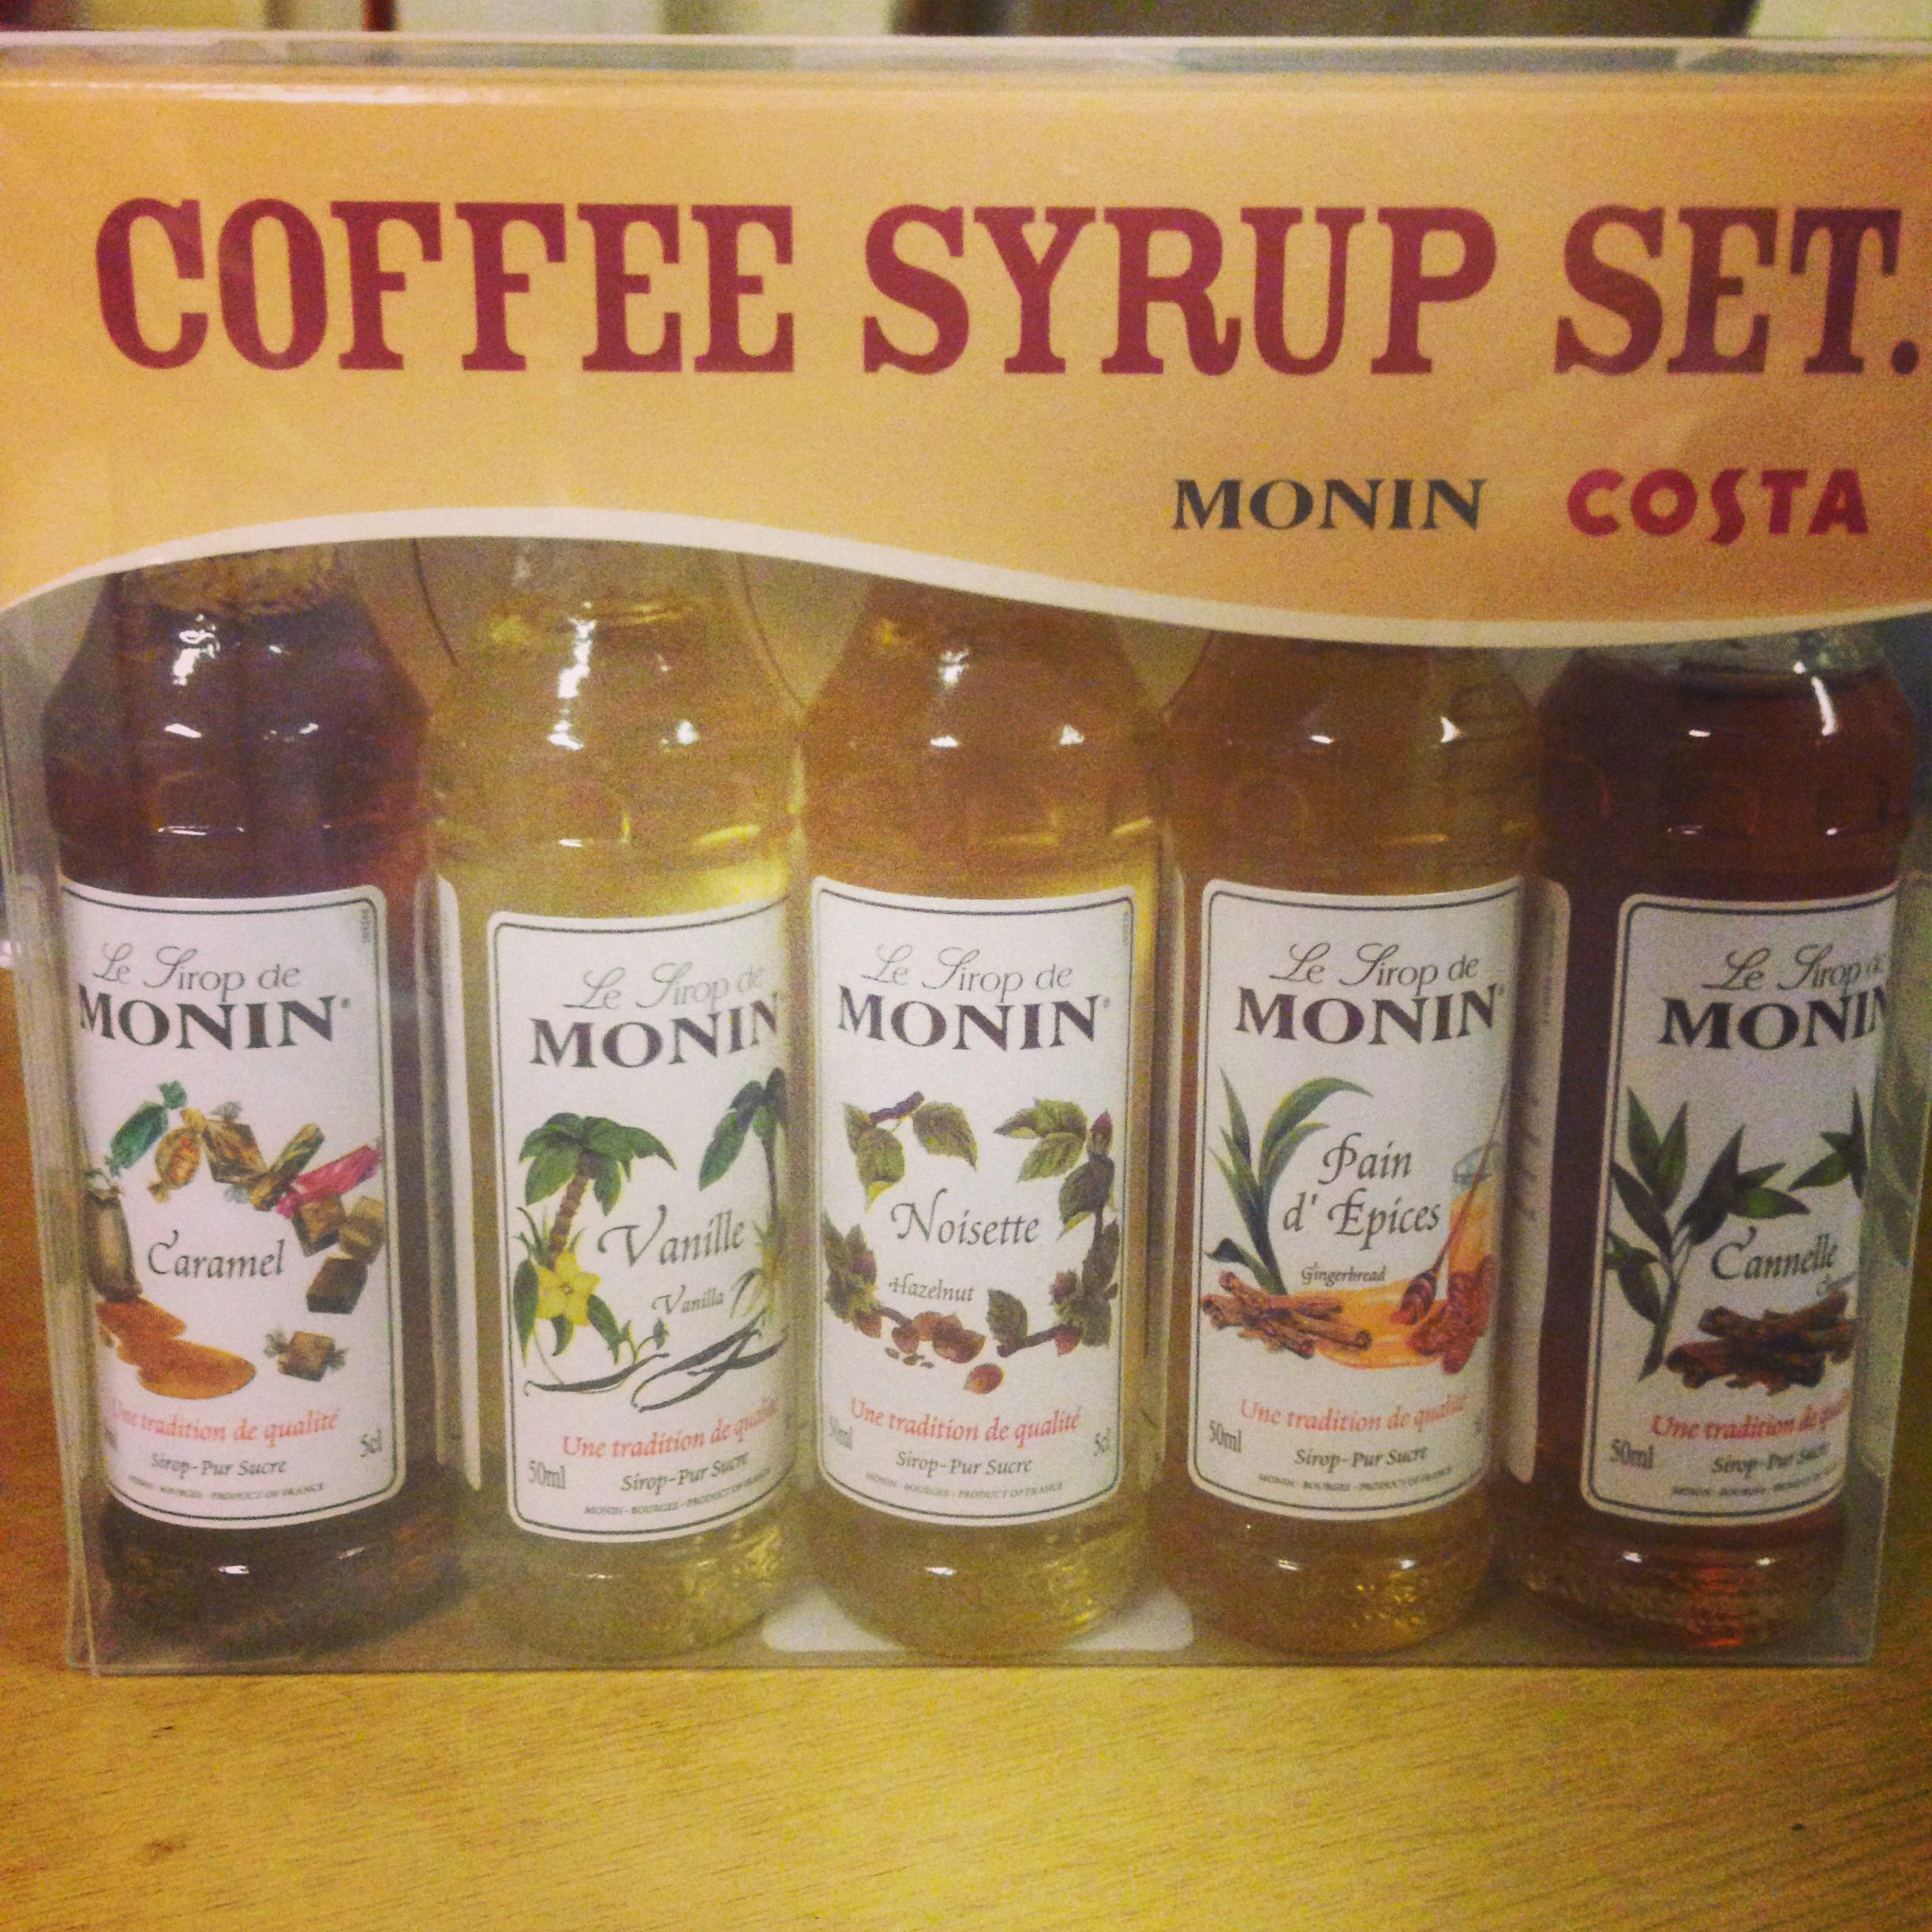 Coffee Syrup from Costa....YES Coffee syrup, Tea bottle